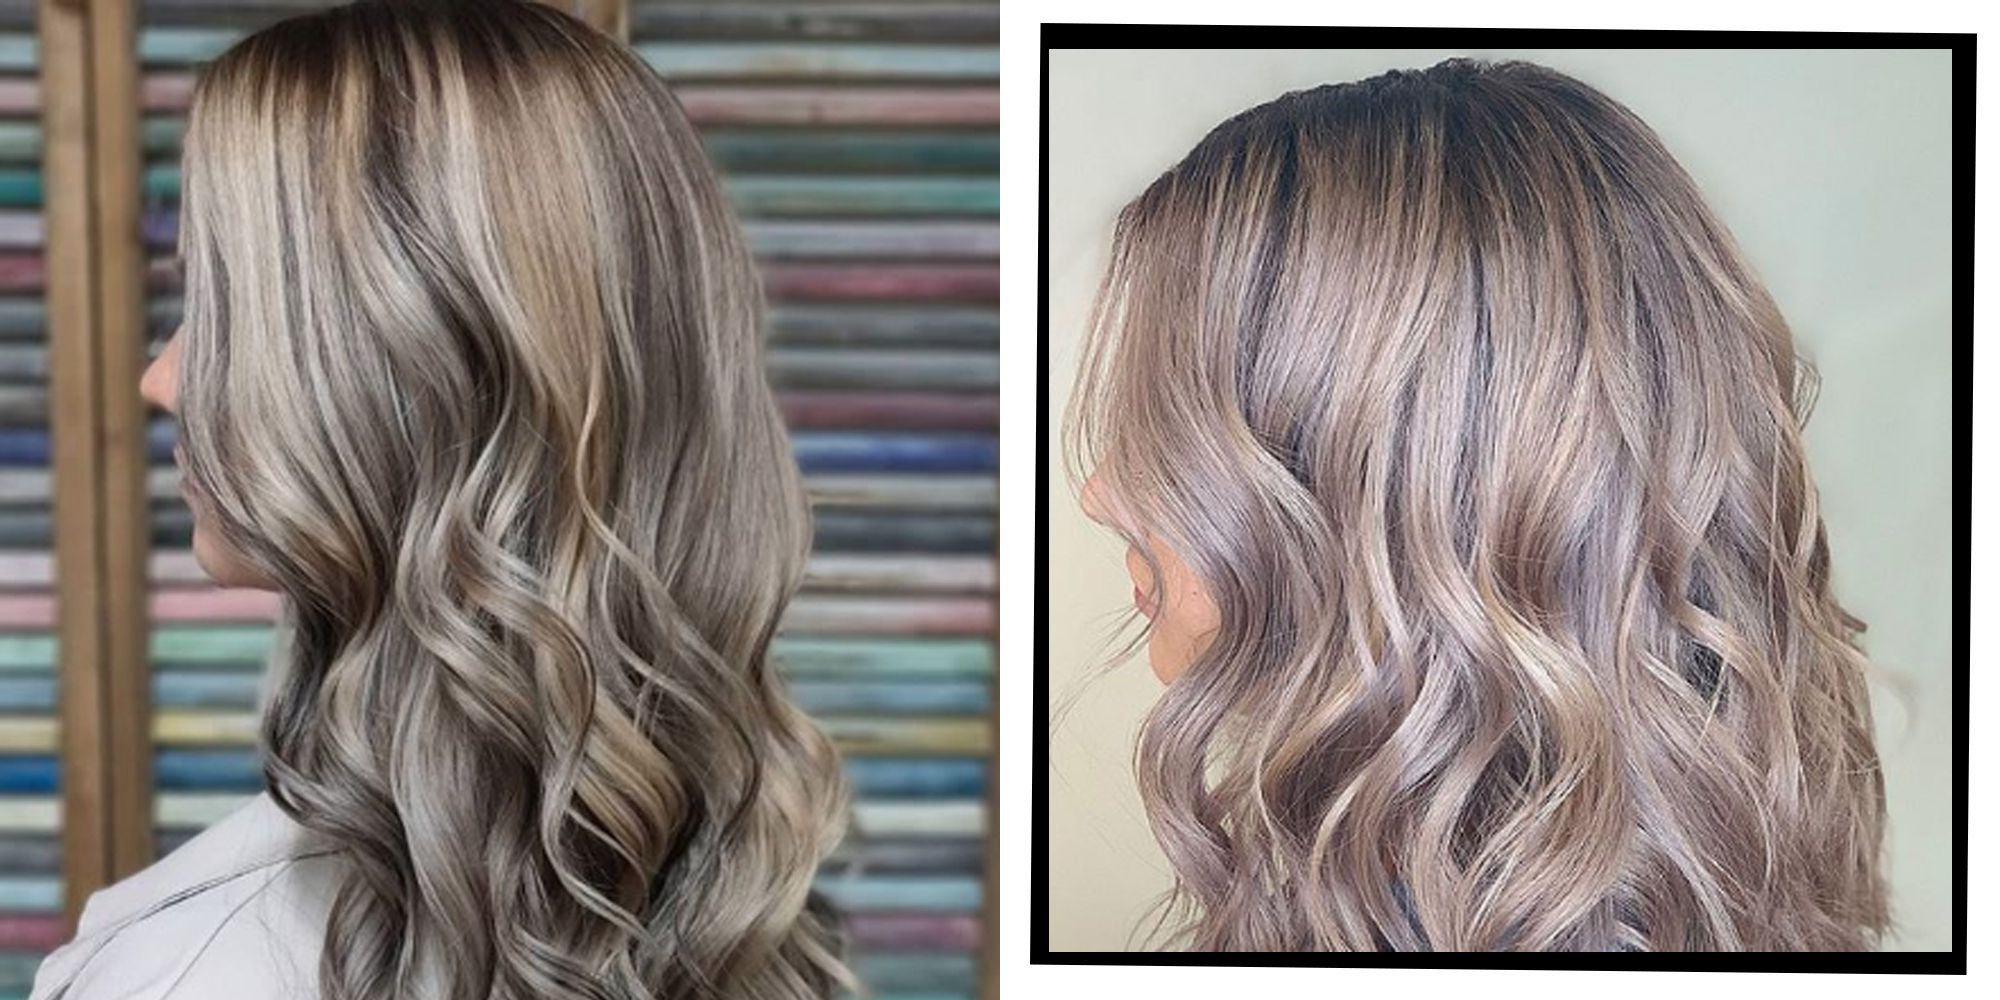 9 Blonde Hair Trends For 2019 – New Ways To Try Blonde Hair With Regard To Most Recent Delicate Light Blonde Shag Haircuts (View 16 of 20)